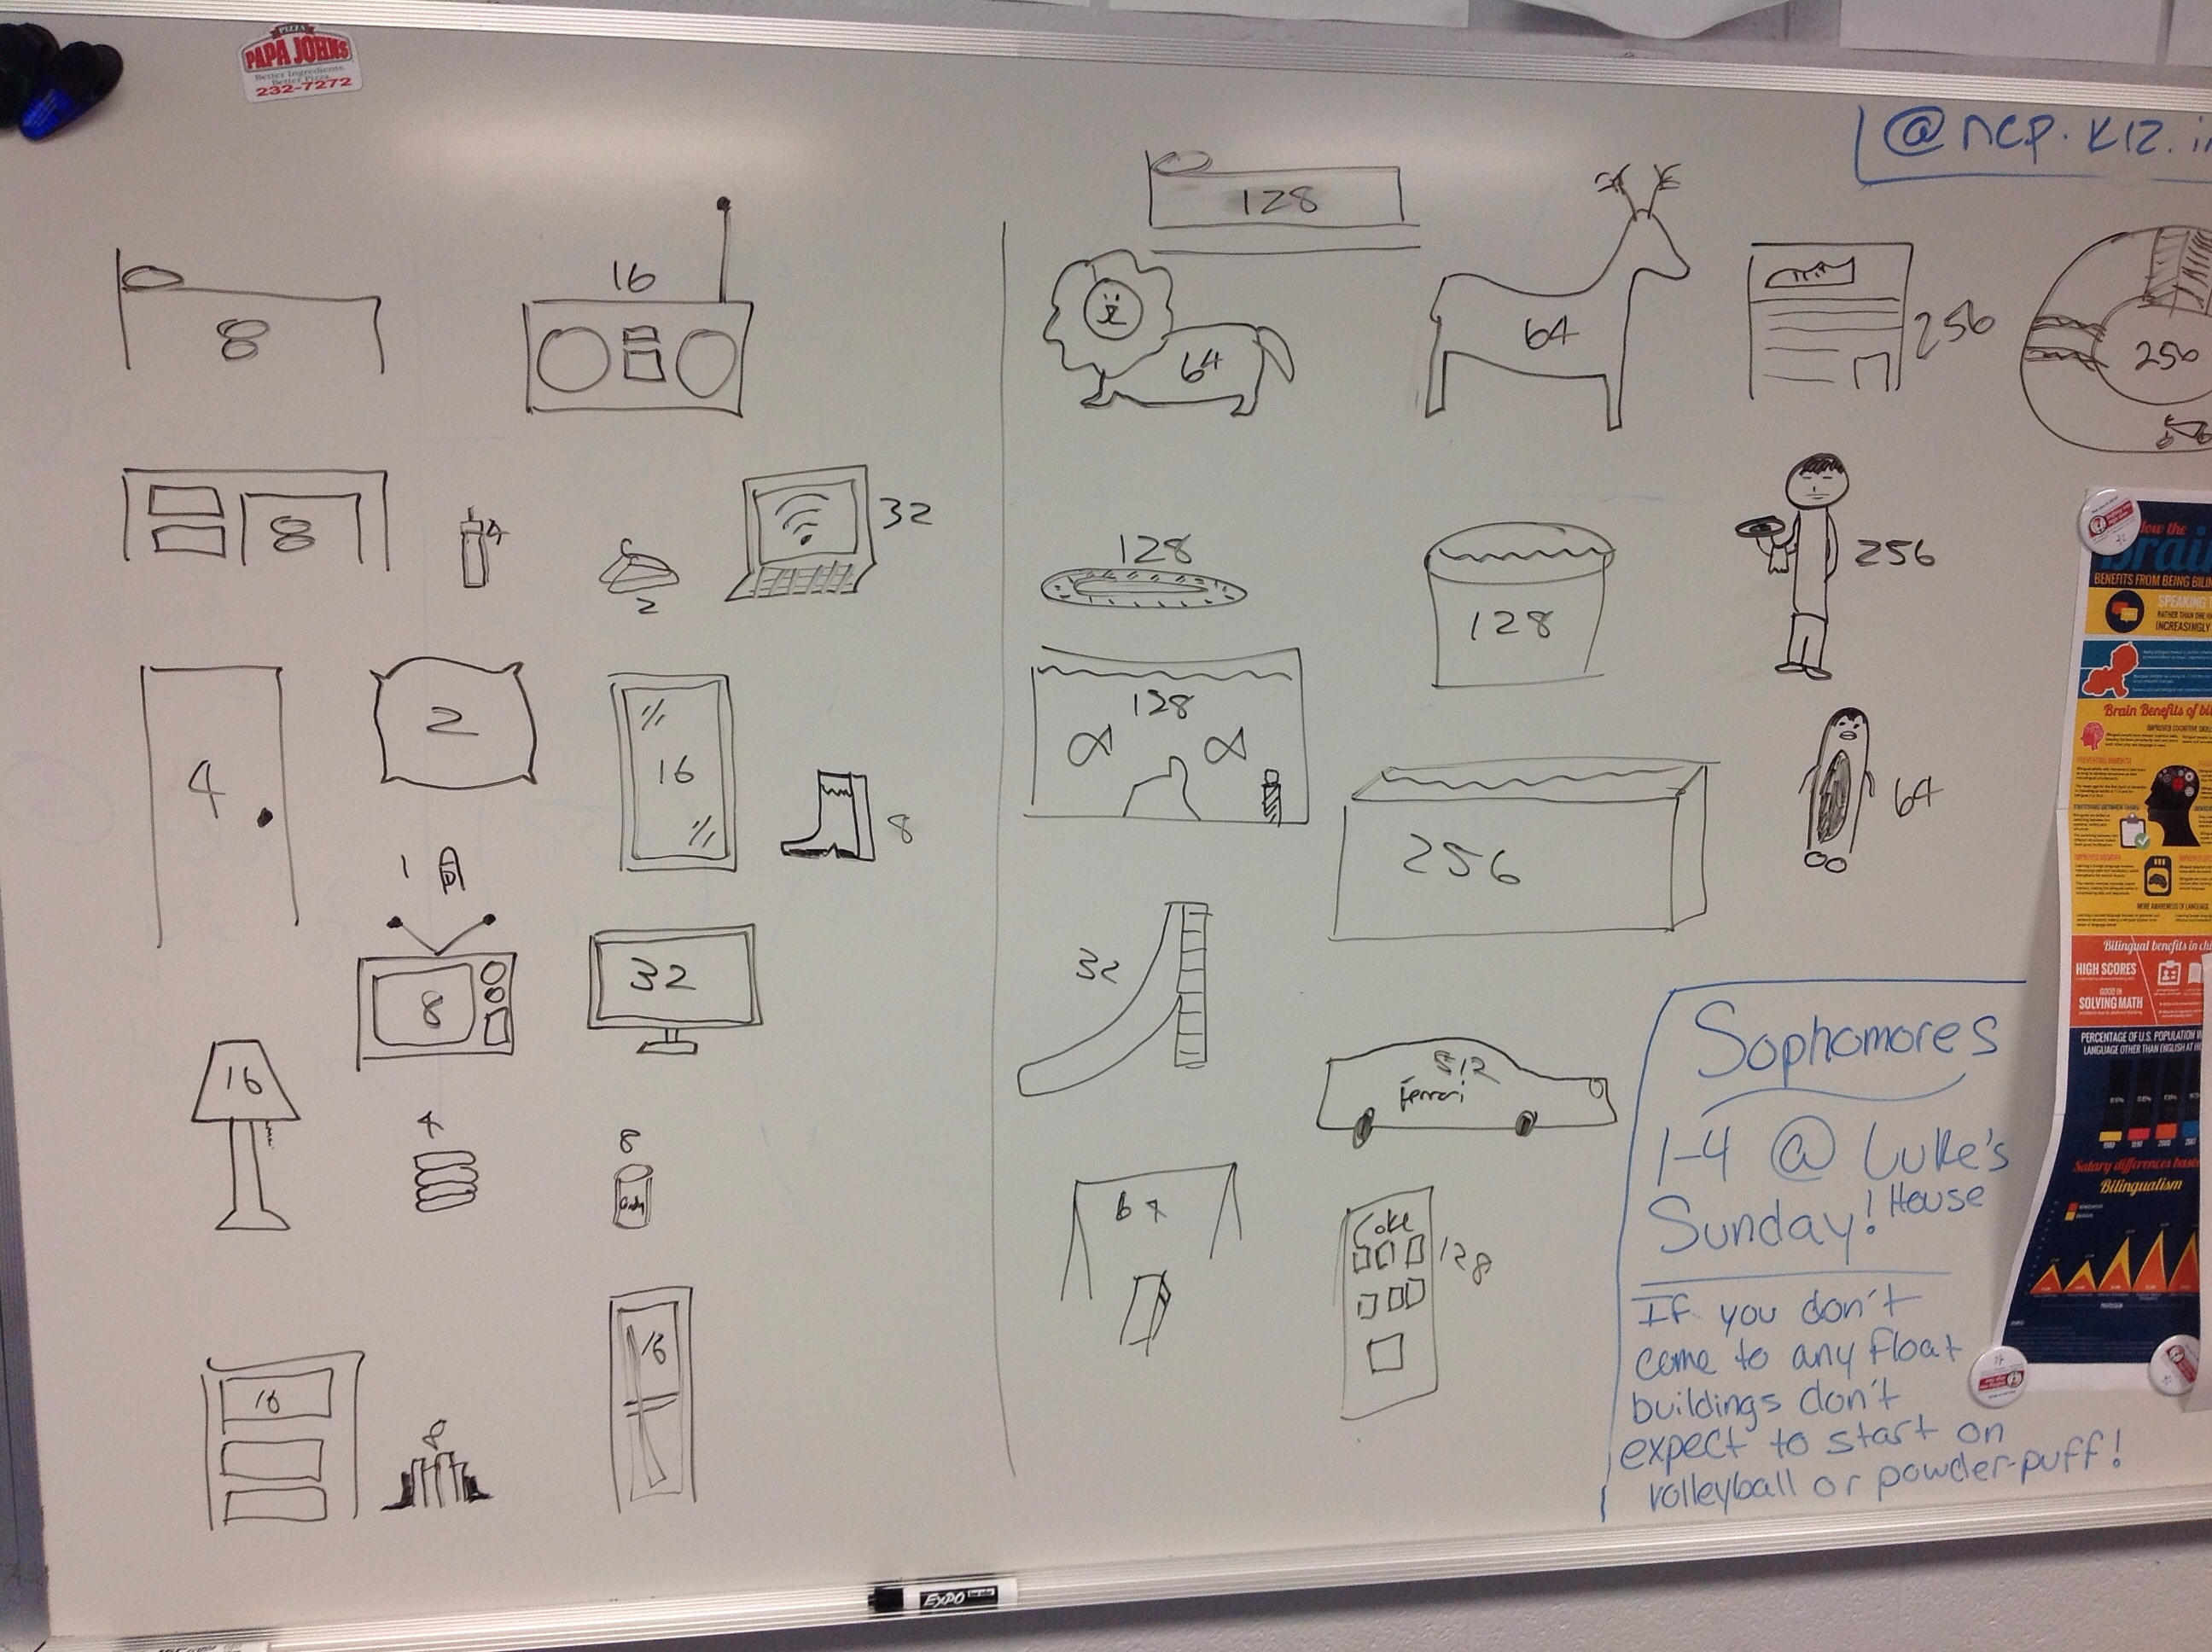 Students came up with the items that could be purchased with points from answering questions. (Photo via Matt Miller)